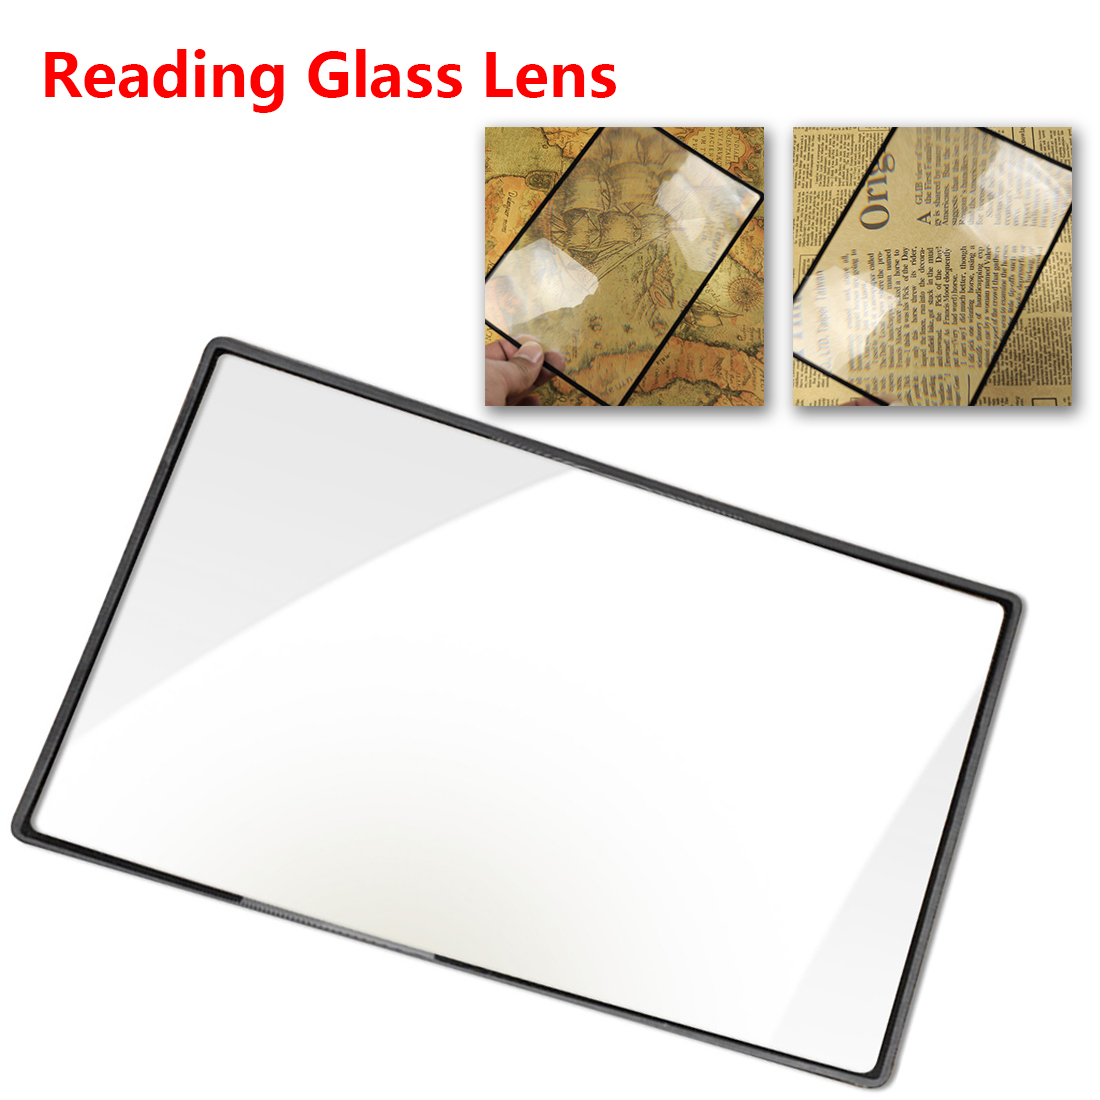 Magnifying Reading Glass Lens 180X120mm Convinient A5 Flat PVC Magnifier Sheet X3 Book Page Magnification kudos x3 black page 8